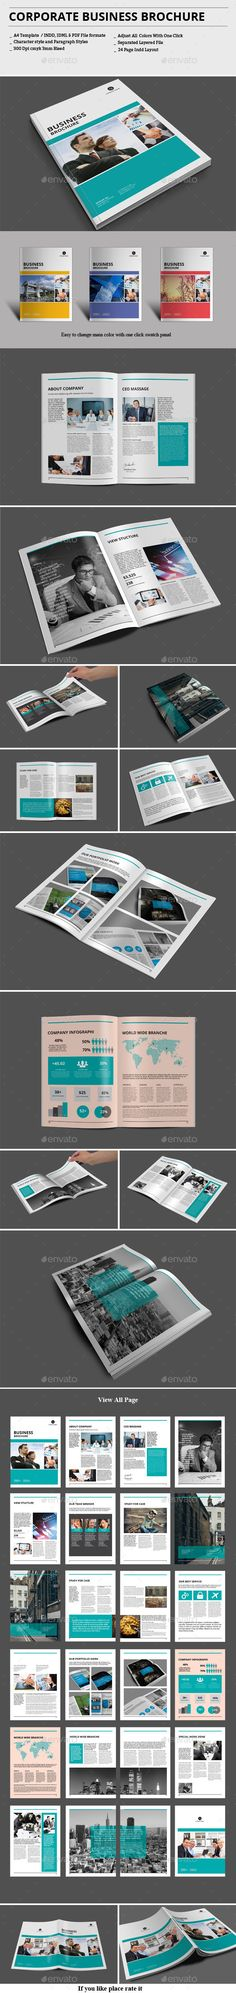 Corporate A Brochure Template  Brochure Template Brochures And